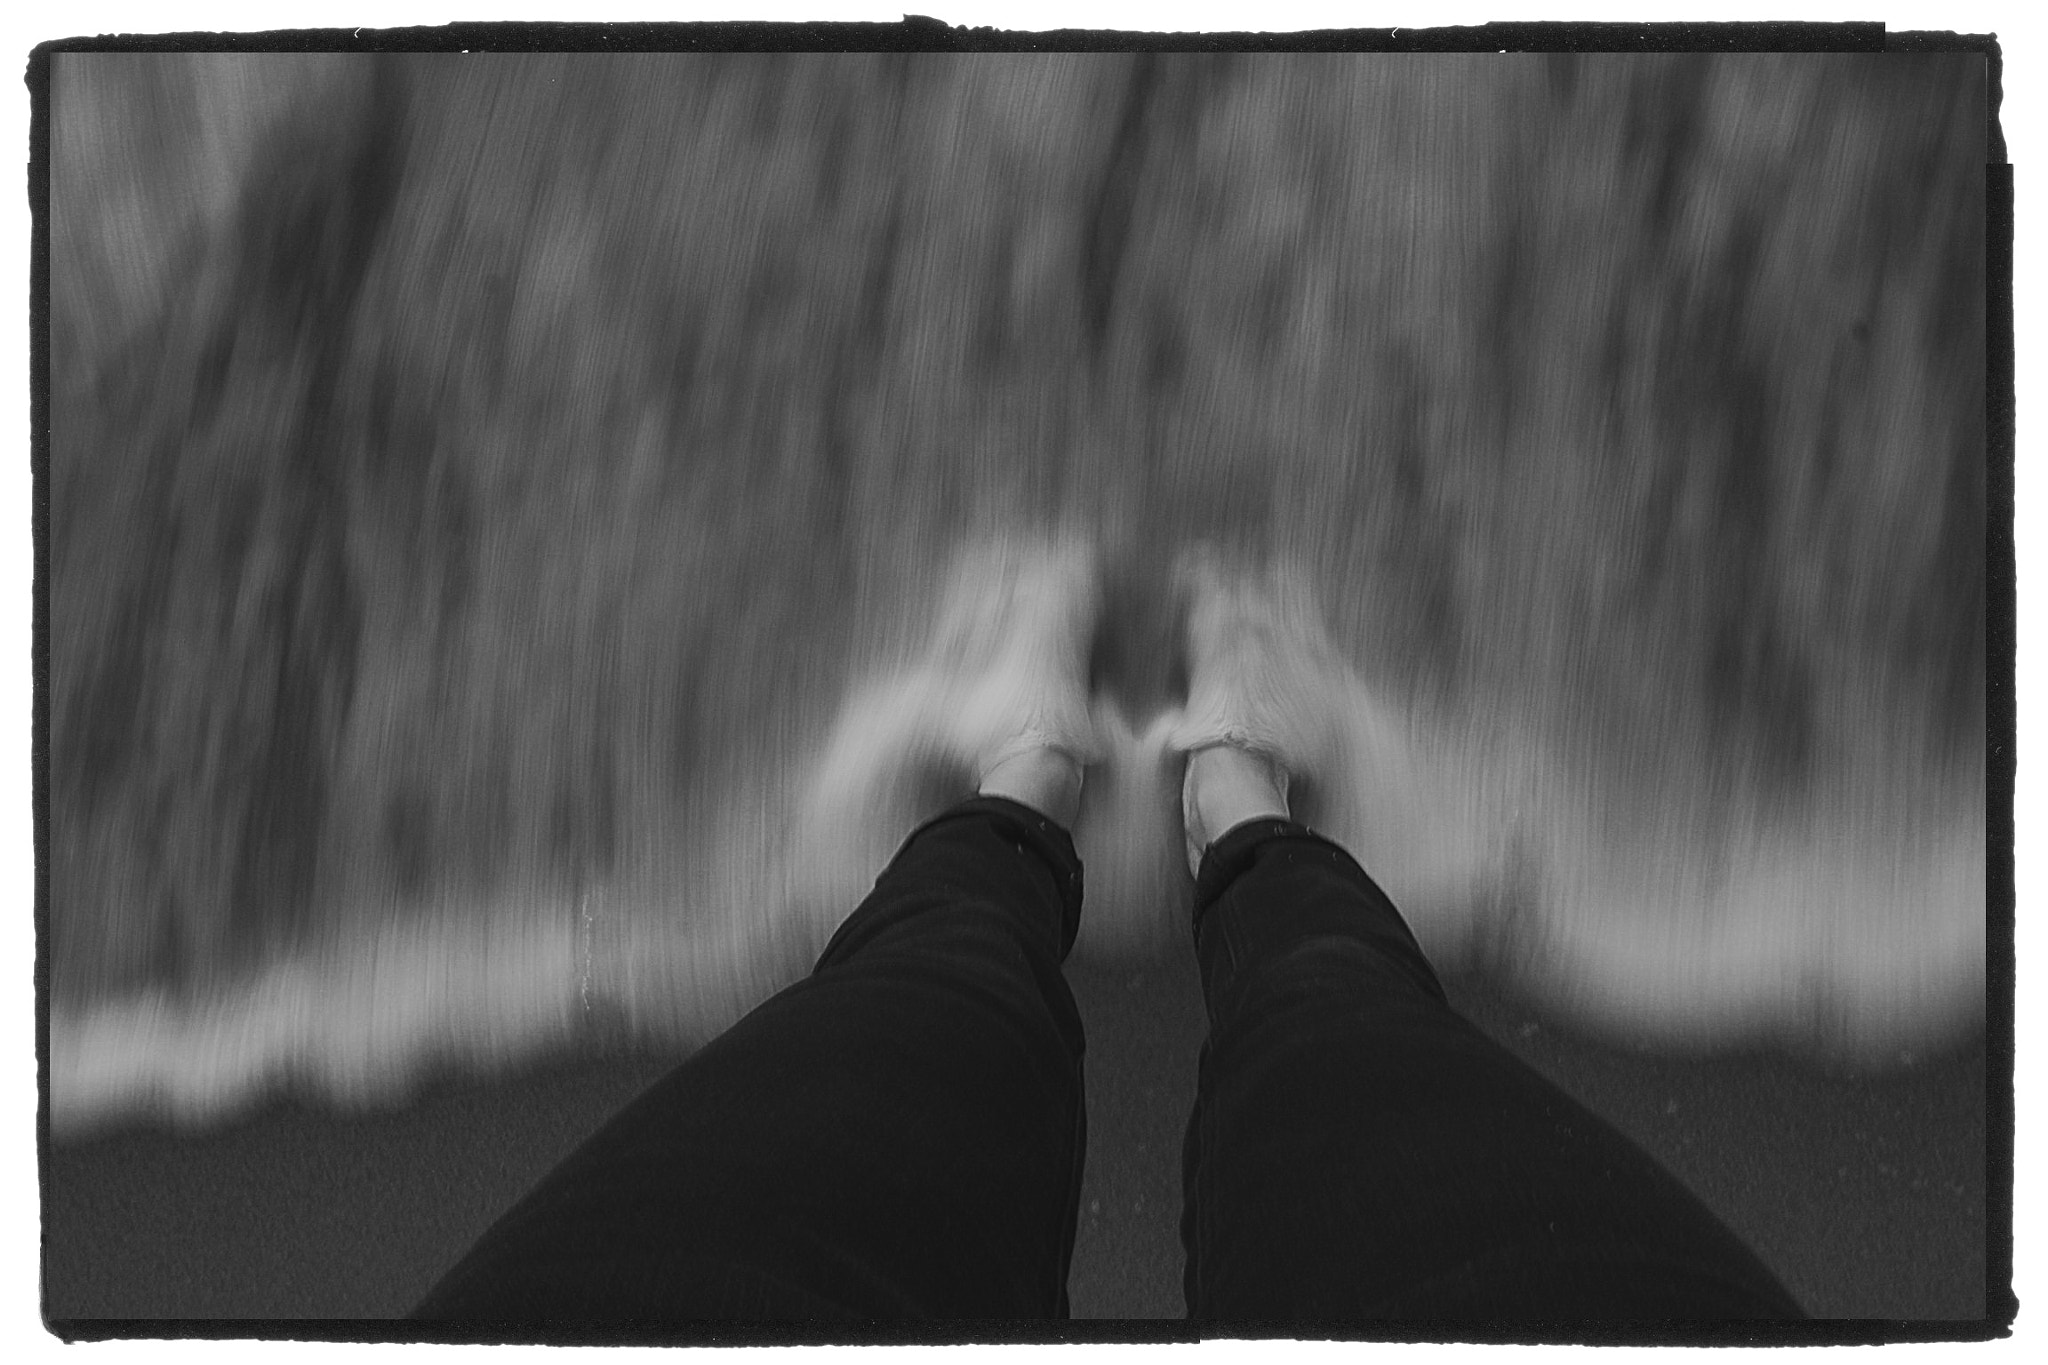 Photograph Feet in the Ocean by Charlotte Raynaud on 500px